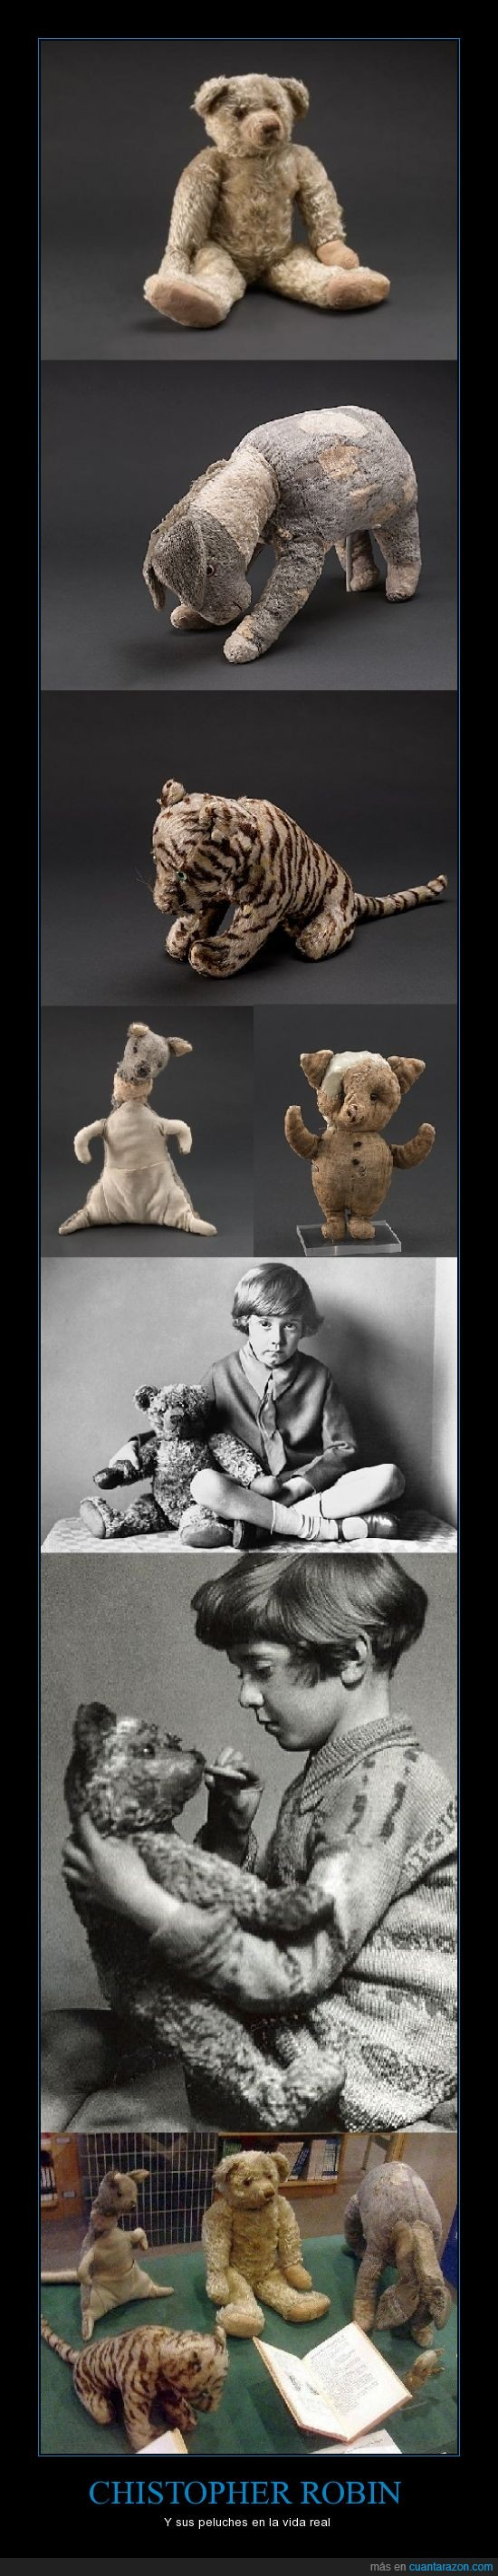 Chistopher Robin,disney,juguetes,peluches,winnie pooh